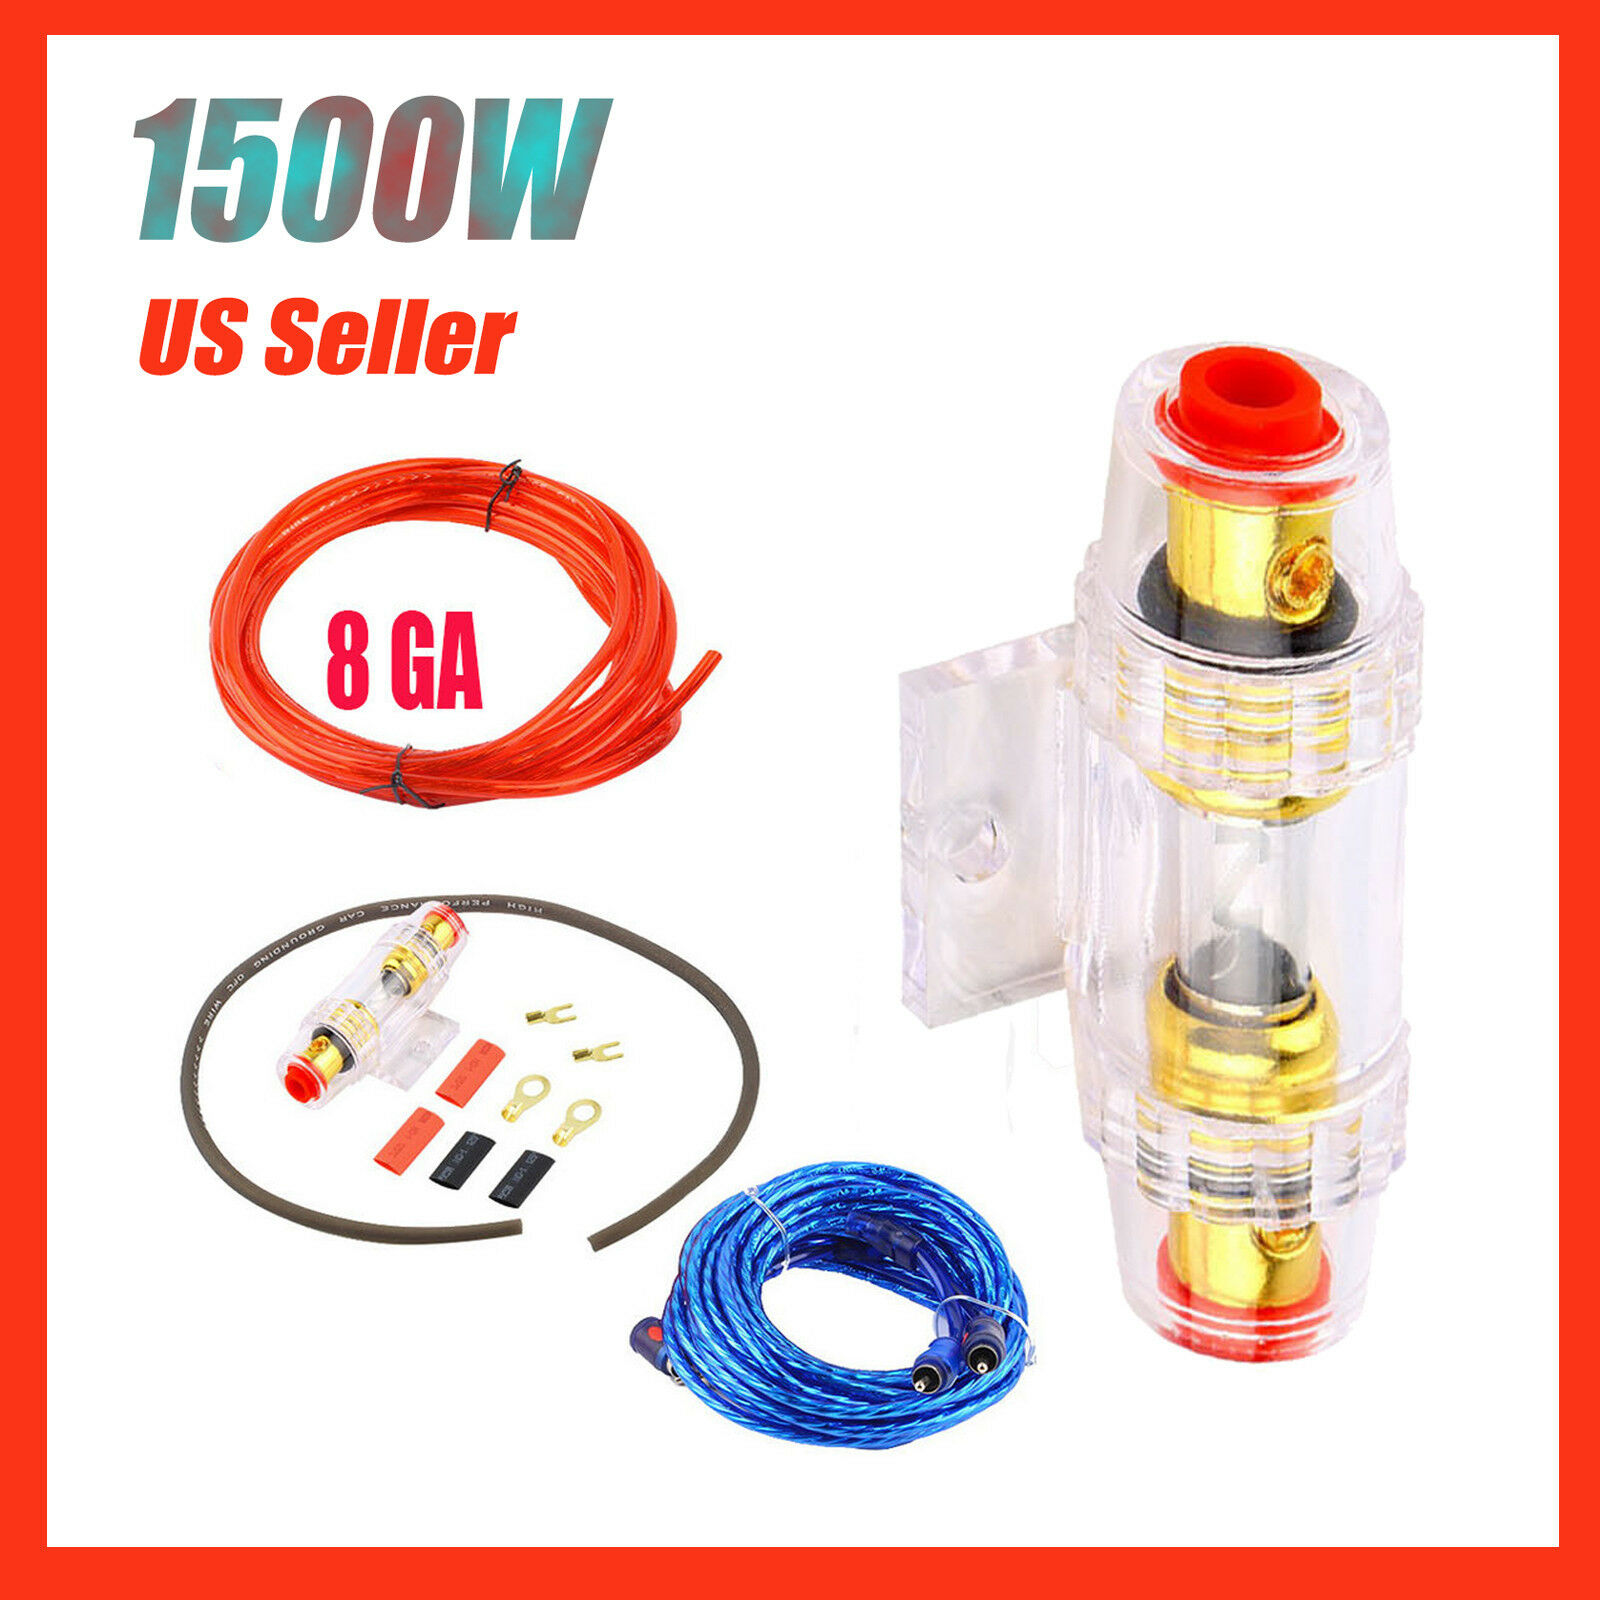 1500w 8ga Car Audio Subwoofer Amplifier Amp Wiring Fuse Holder Wire Jl 1 Of 7only 5 Available Cable